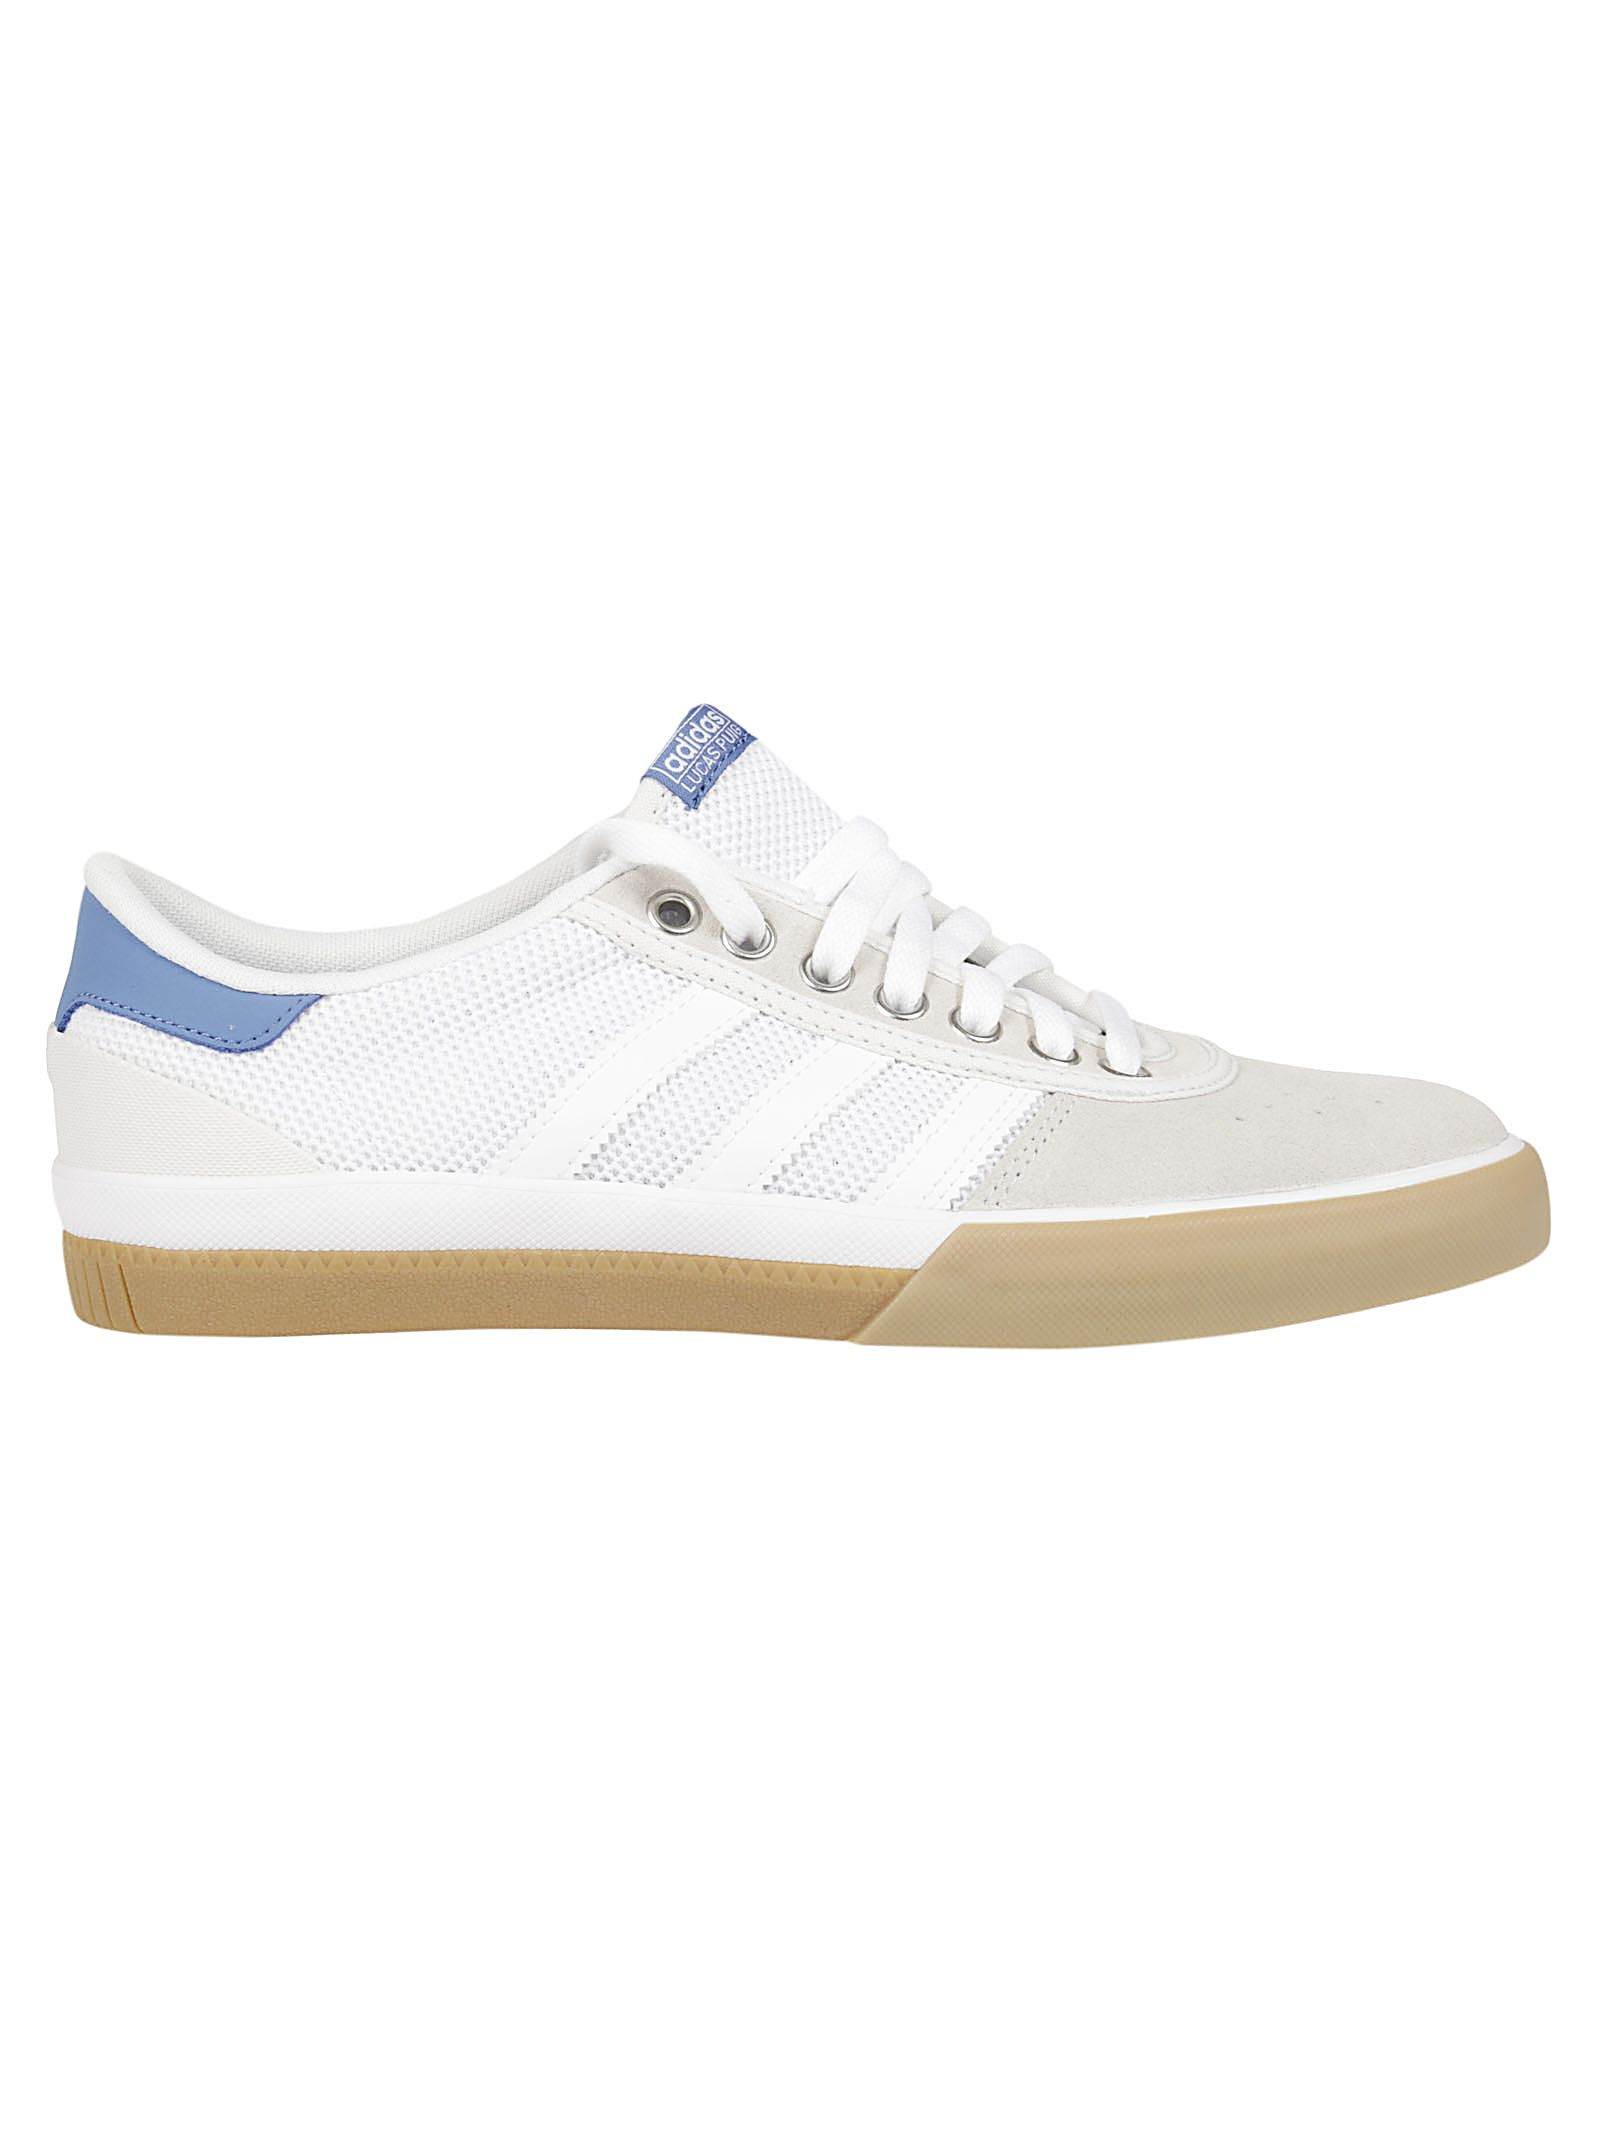 MADWYS Sneakers & Tennis basses femme. 5QINz7